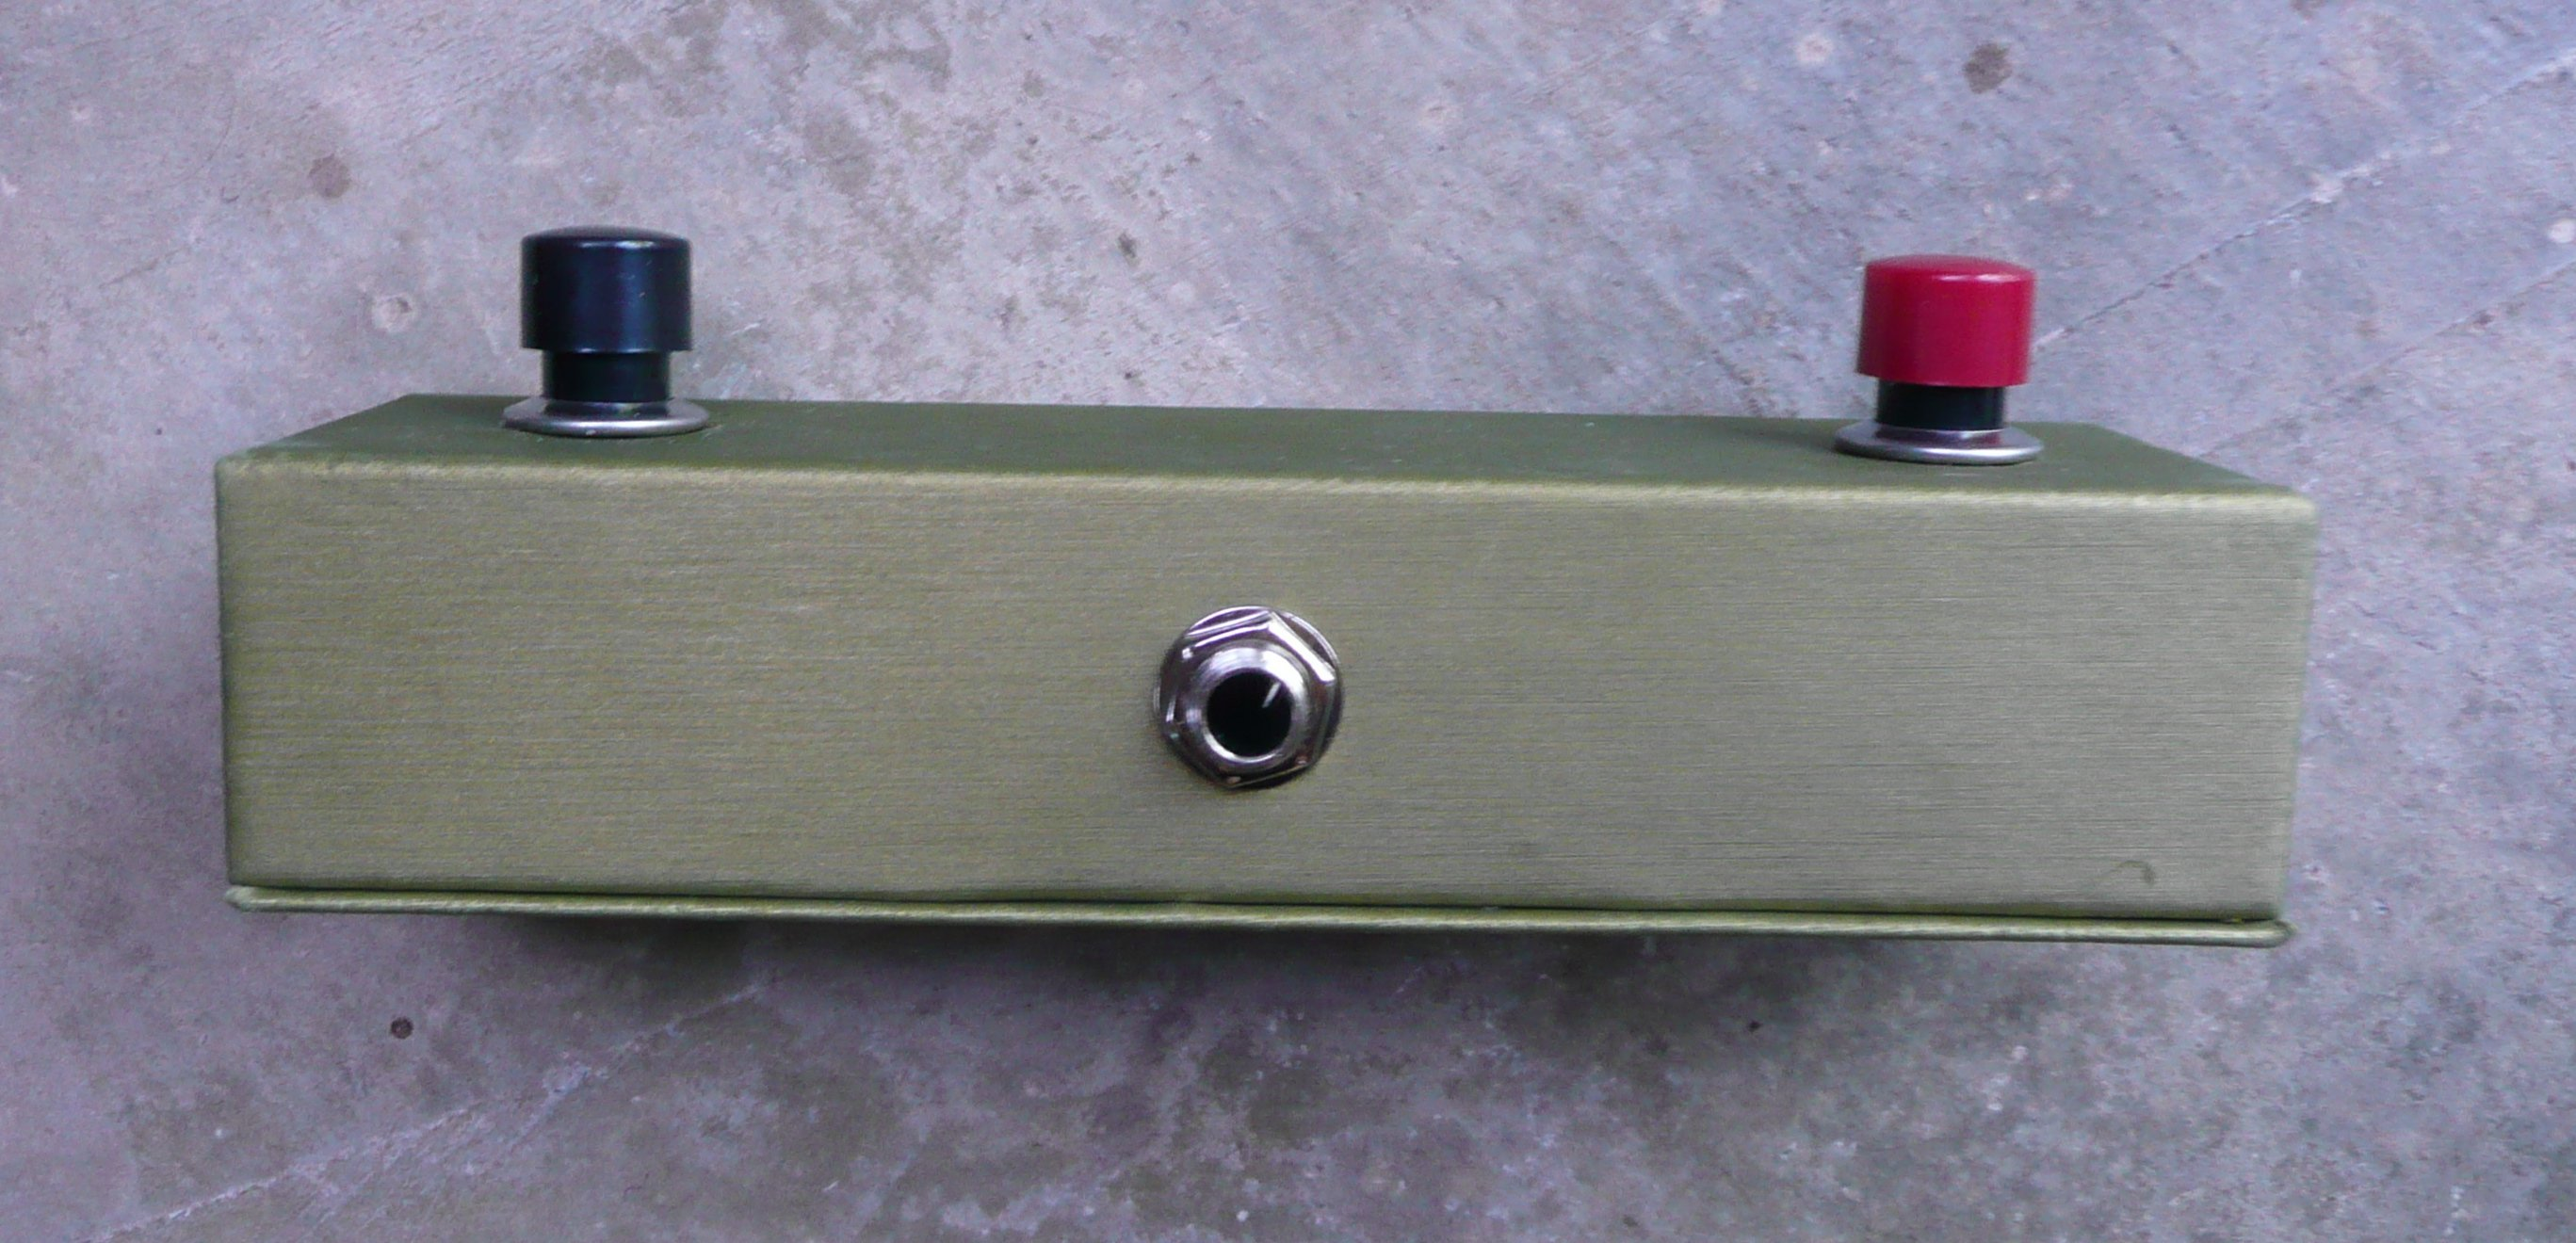 Diy Momentary Footswitch Pedal For Boss Or Roland Gear Live Ukulele Stomp Box Switch Wiring Diagram This Is The Stereo Cable That Sends Two Signals Instead Of One If You Use Just A Normal Instrument Only Switches Will Have Function